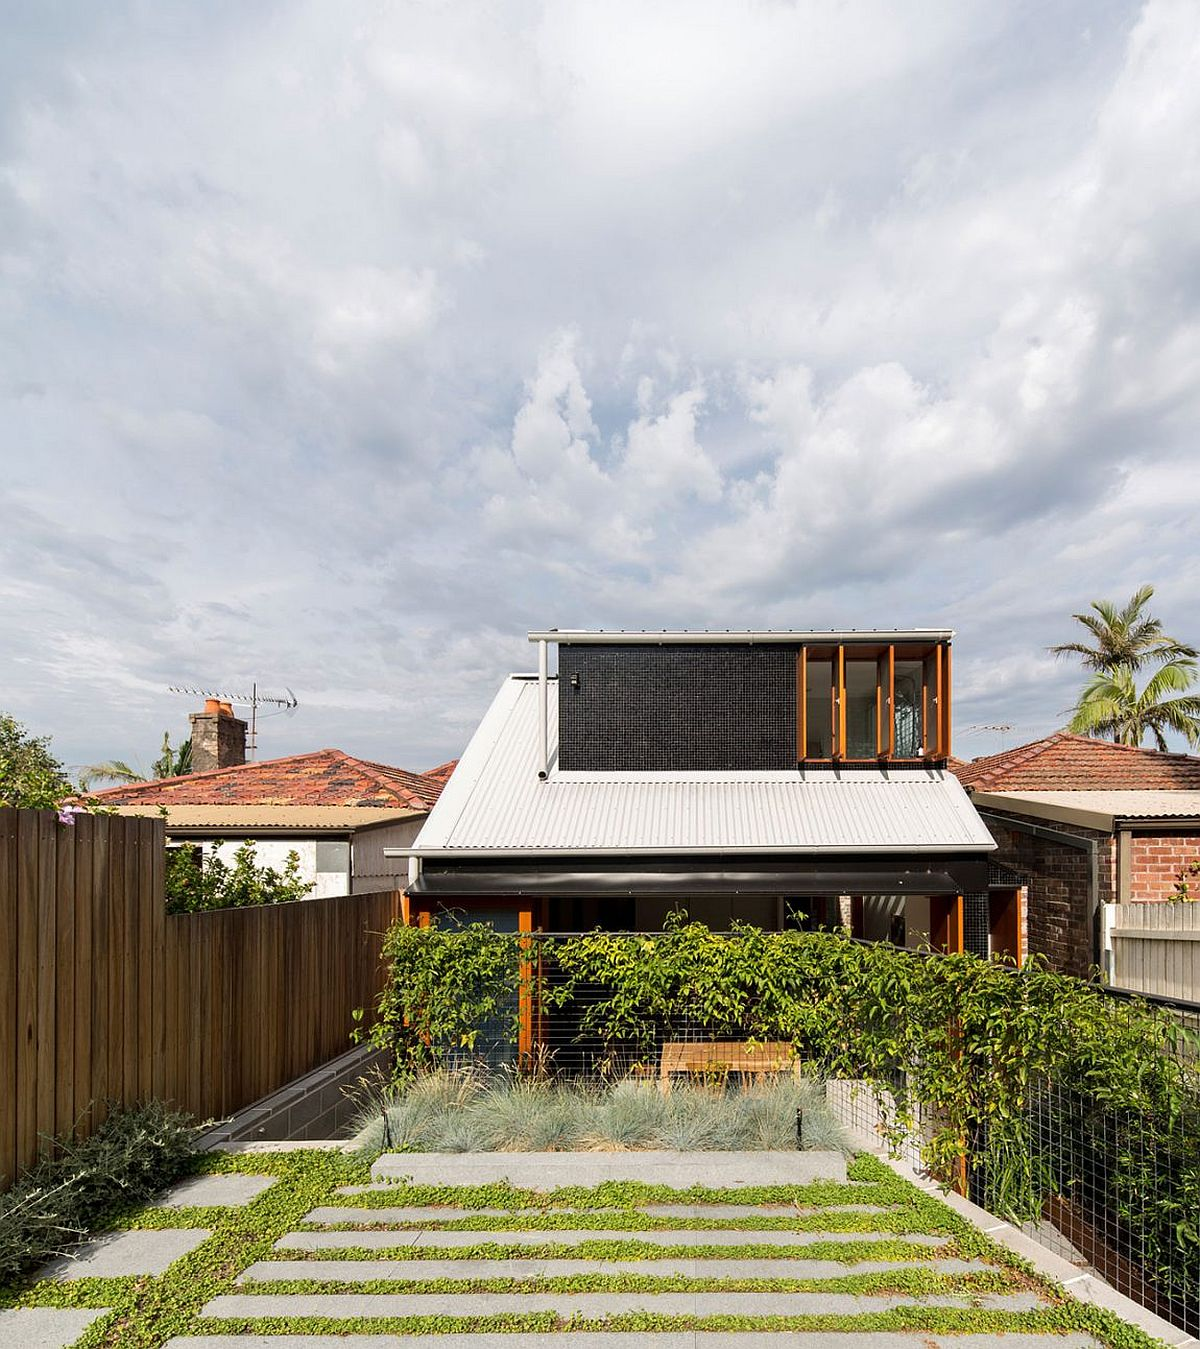 Rear garden of Downsize Upsize House in North Shore Sydney Budget Family Home in Sydney Uses Reclaimed Bricks, Concrete and Tile